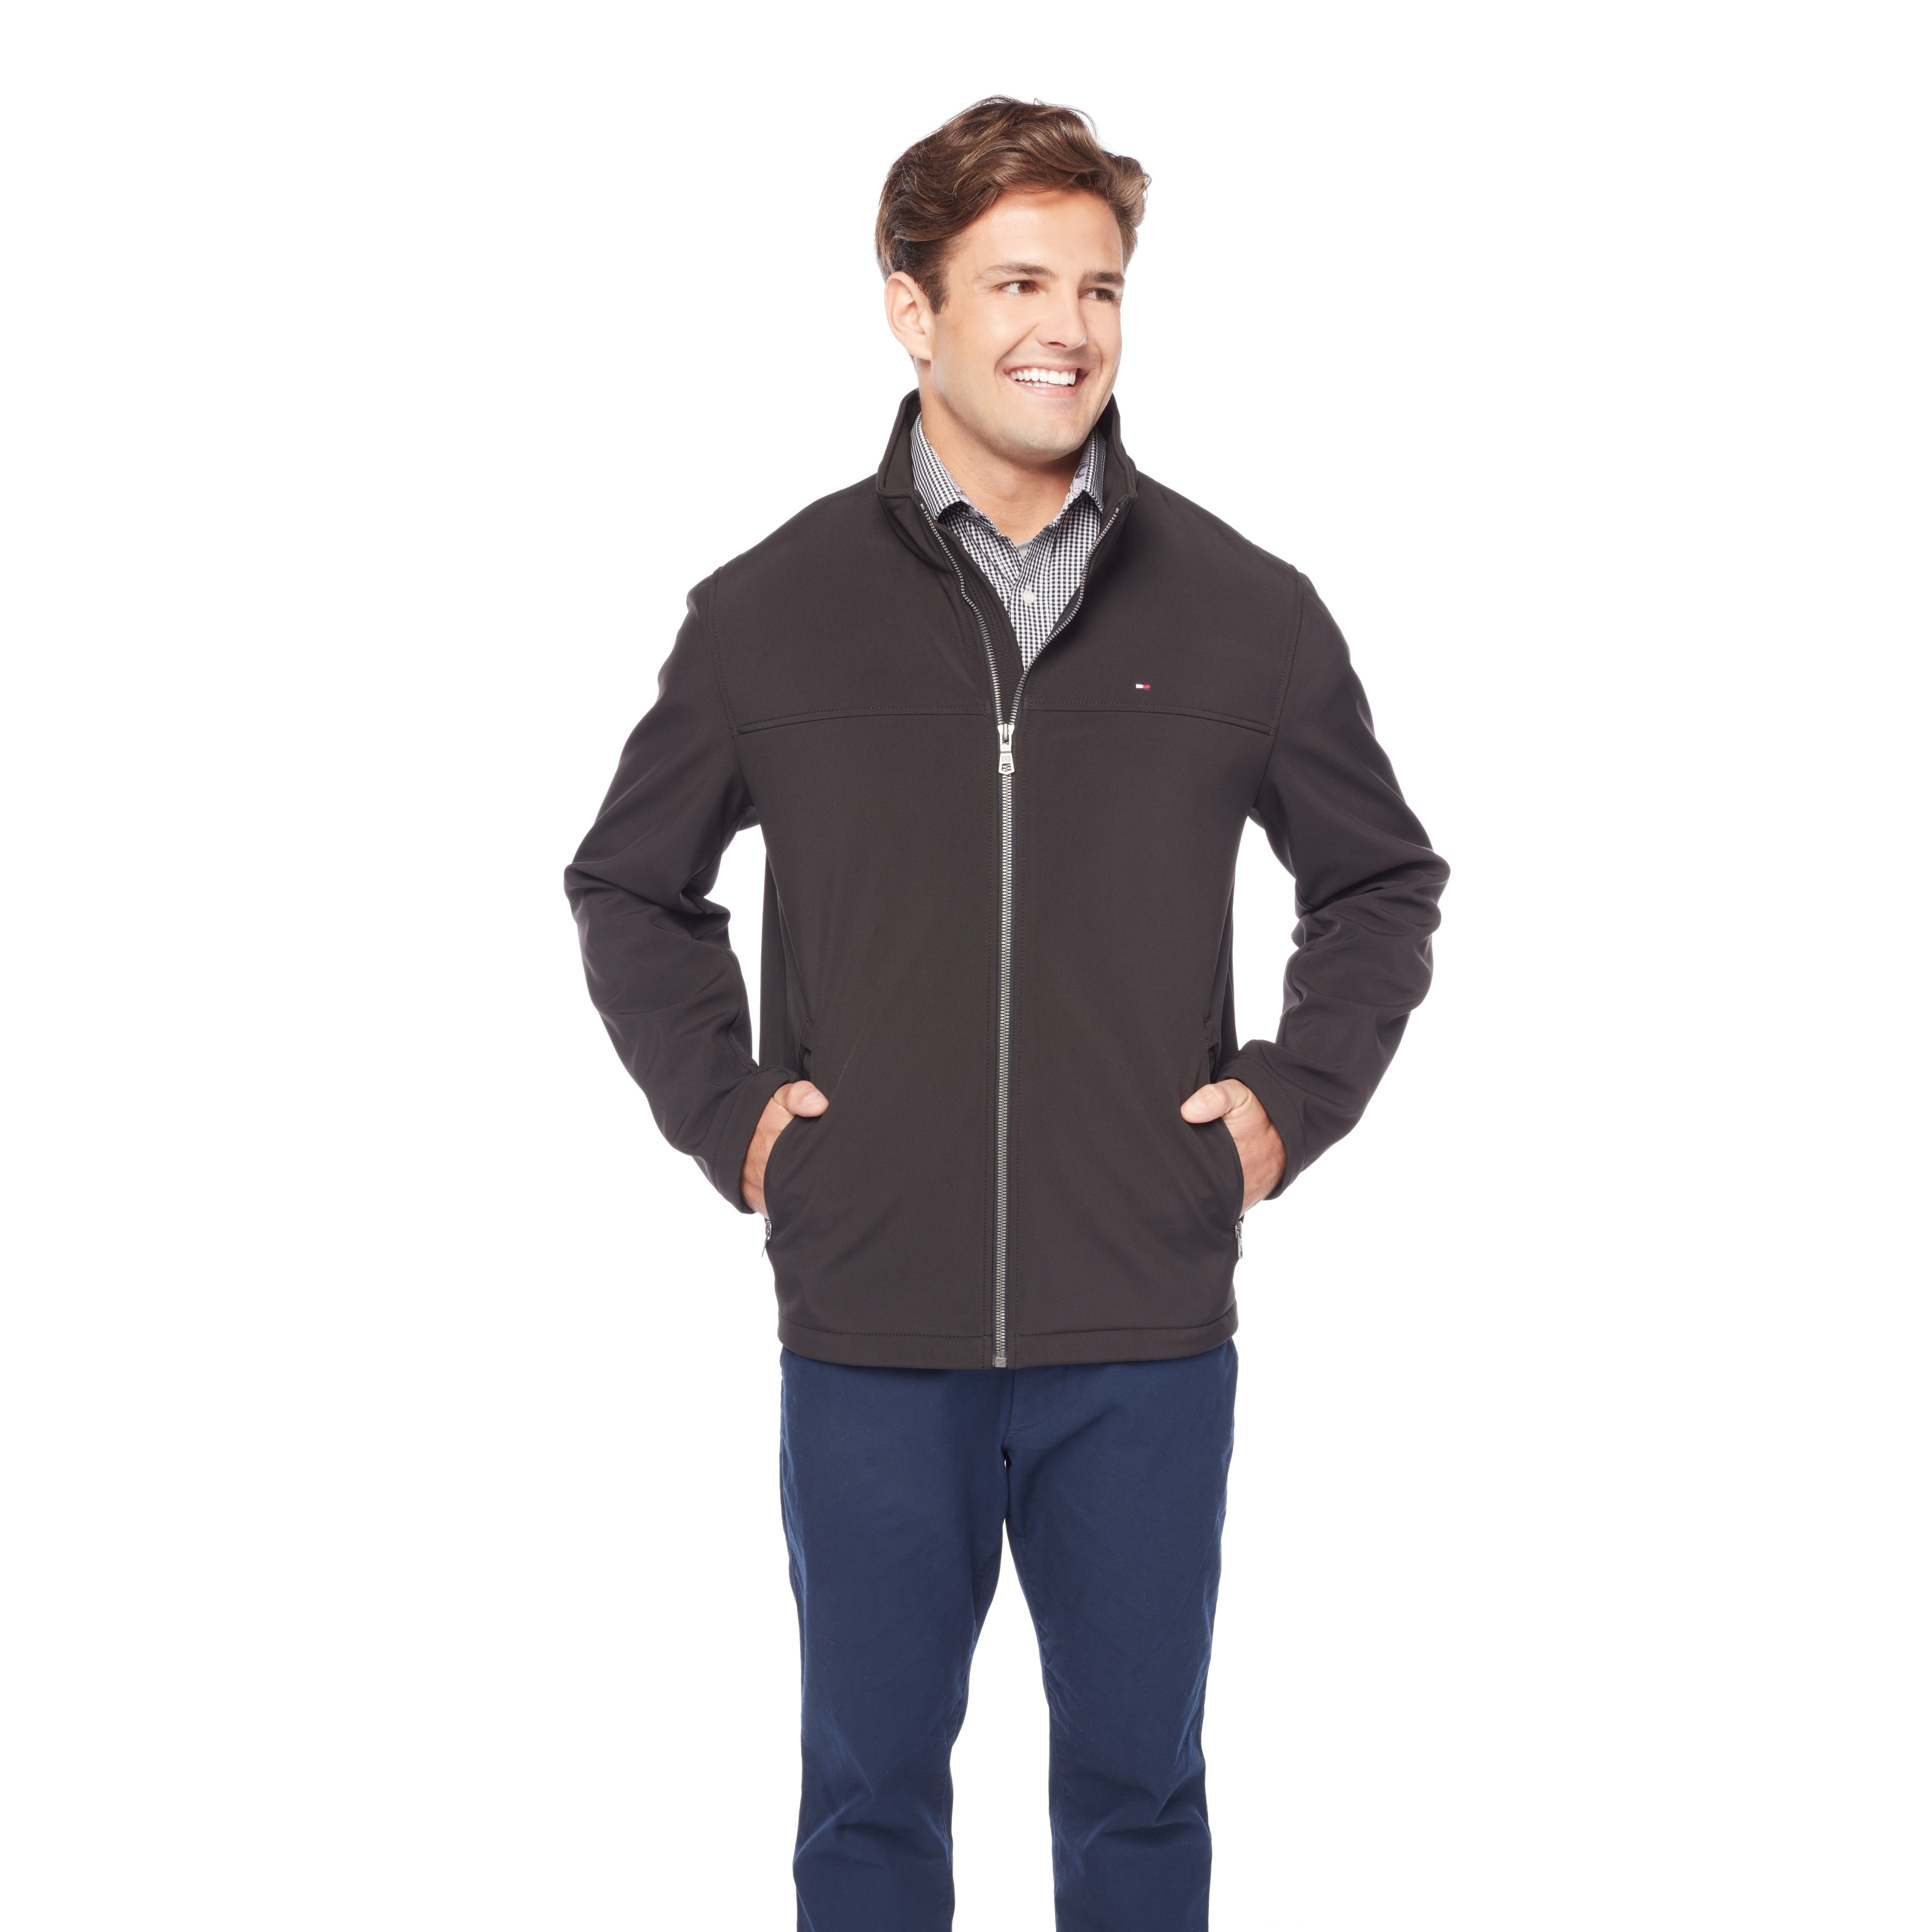 2f96d4862 Shop Tommy Hilfiger Men's Soft Shell Jacket - Free Shipping Today ...